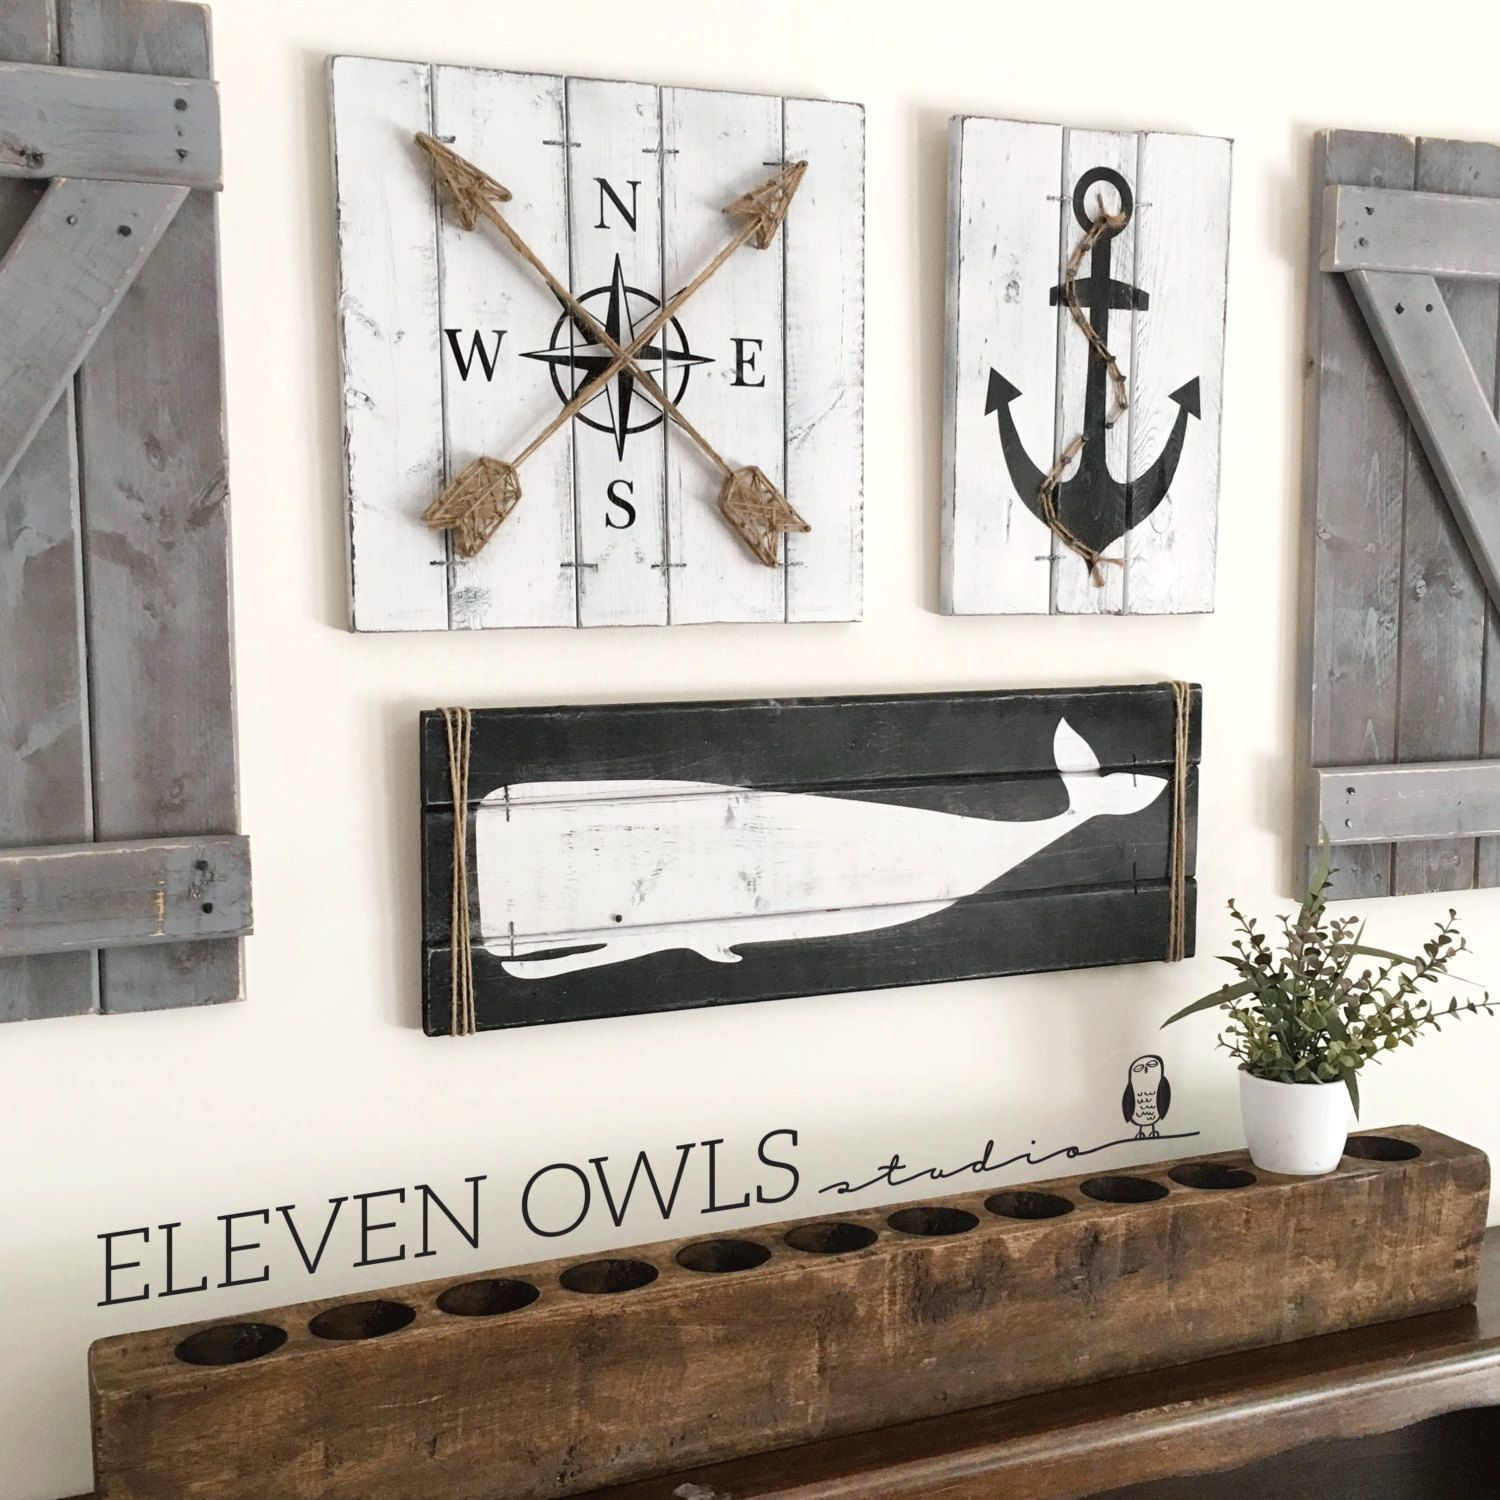 NAUTICAL ART SET 3 Piece Set Rustic Beach House Decor Wooden Nautical